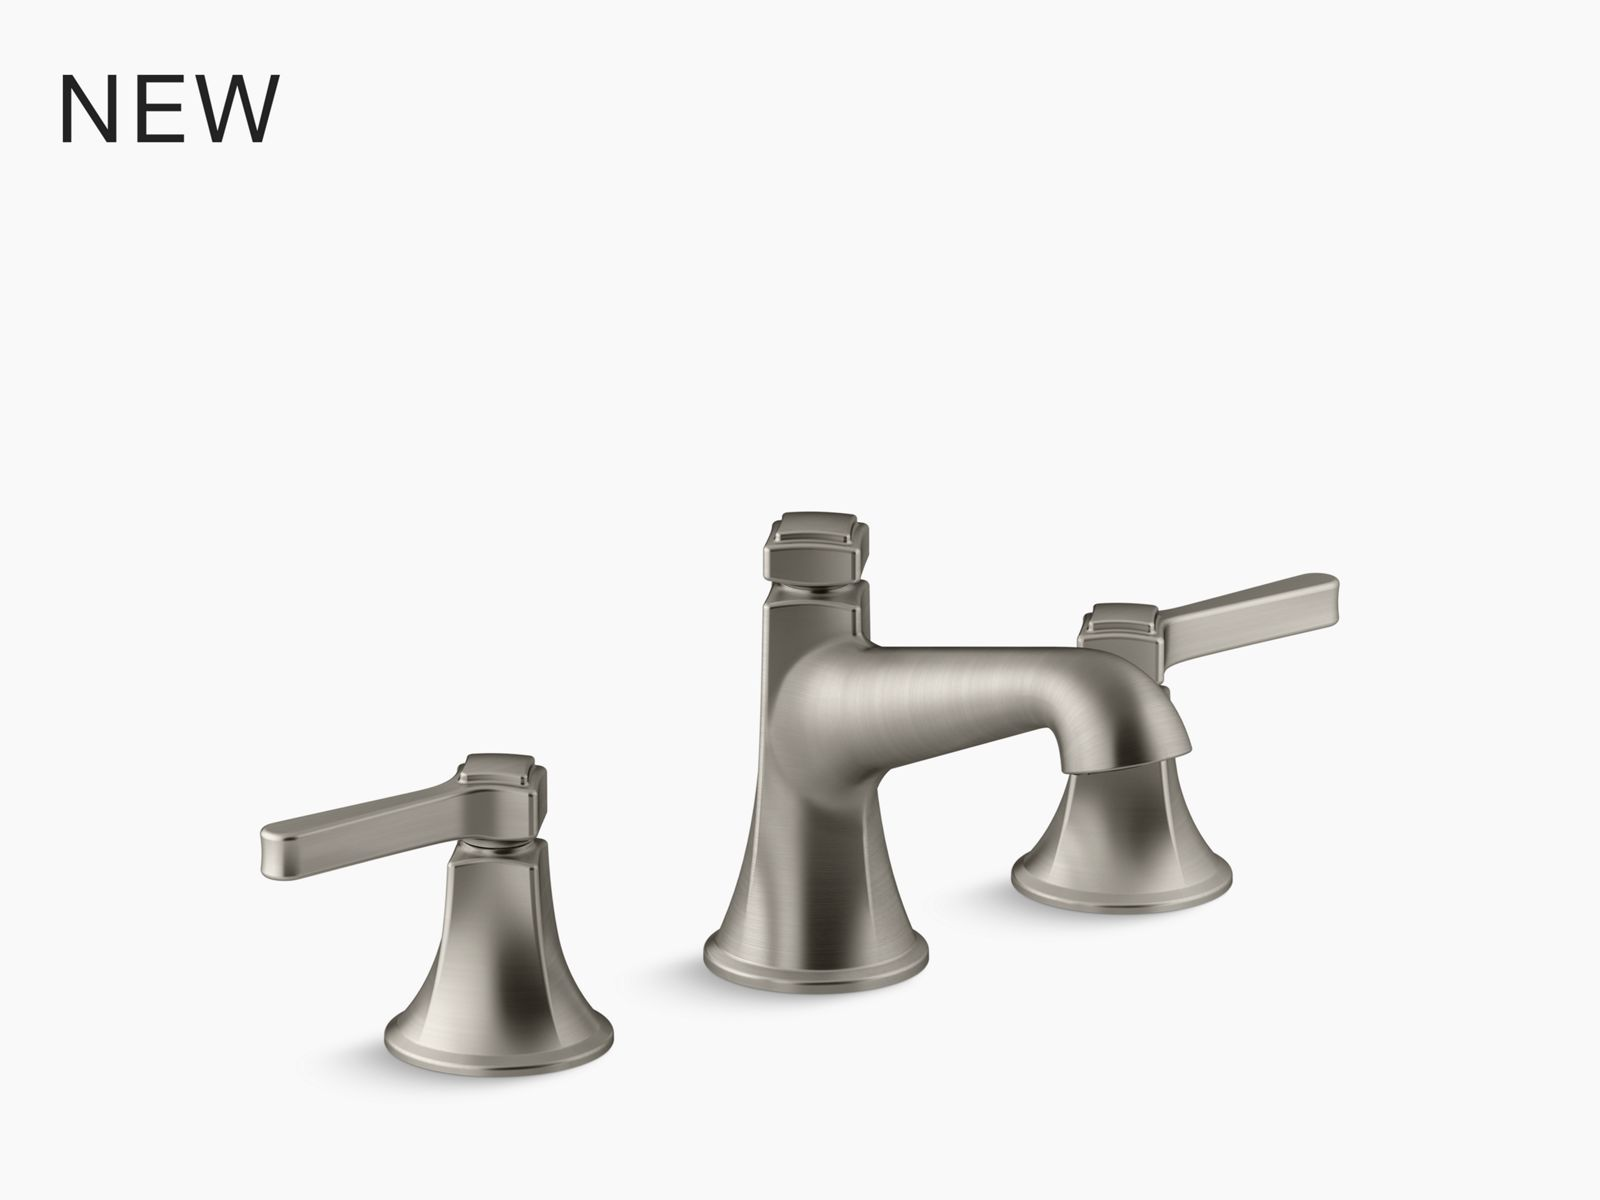 purist two hole wall mount bridge kitchen sink faucet with 13 7 8 spout